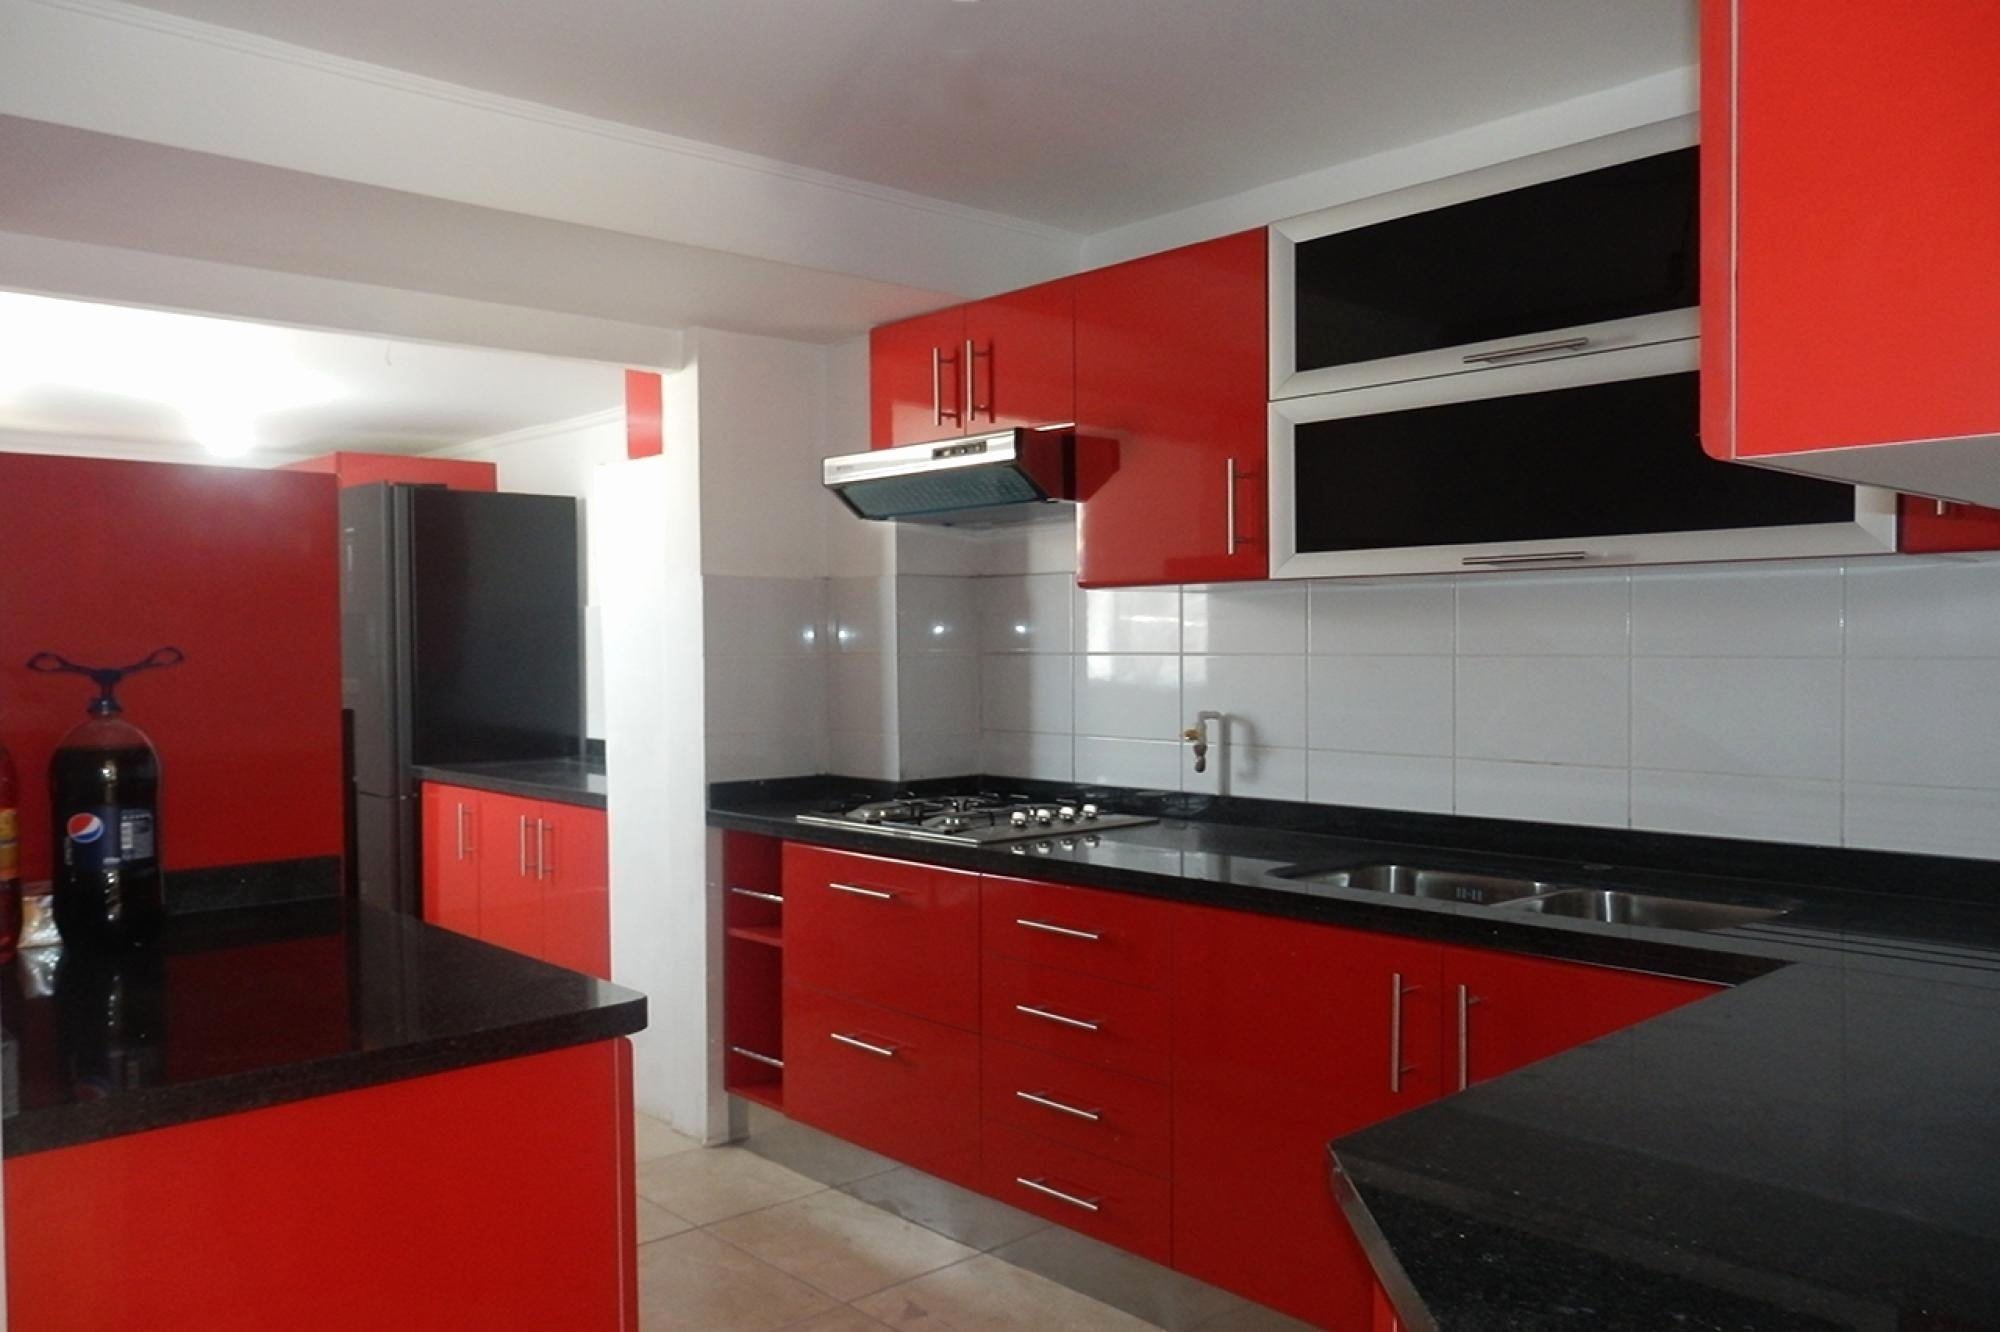 10 Attractive Red And Black Kitchen Ideas red and black kitchen ideas beautiful modern red kitchen design with 2021